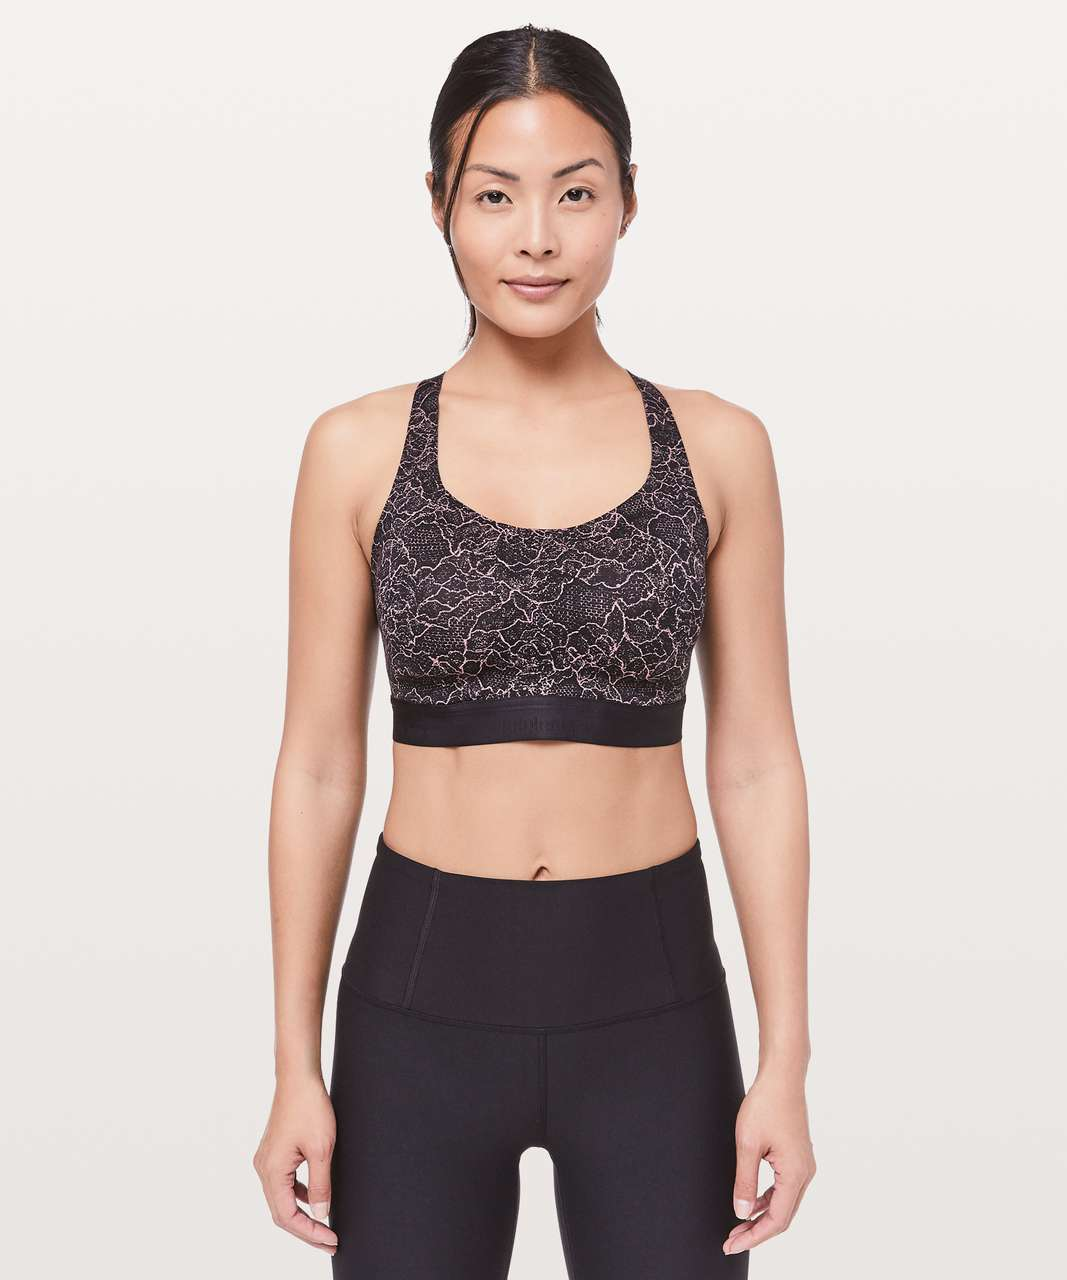 Lululemon Fine Form Bra - Lacescape Spanish Rose Black / Black